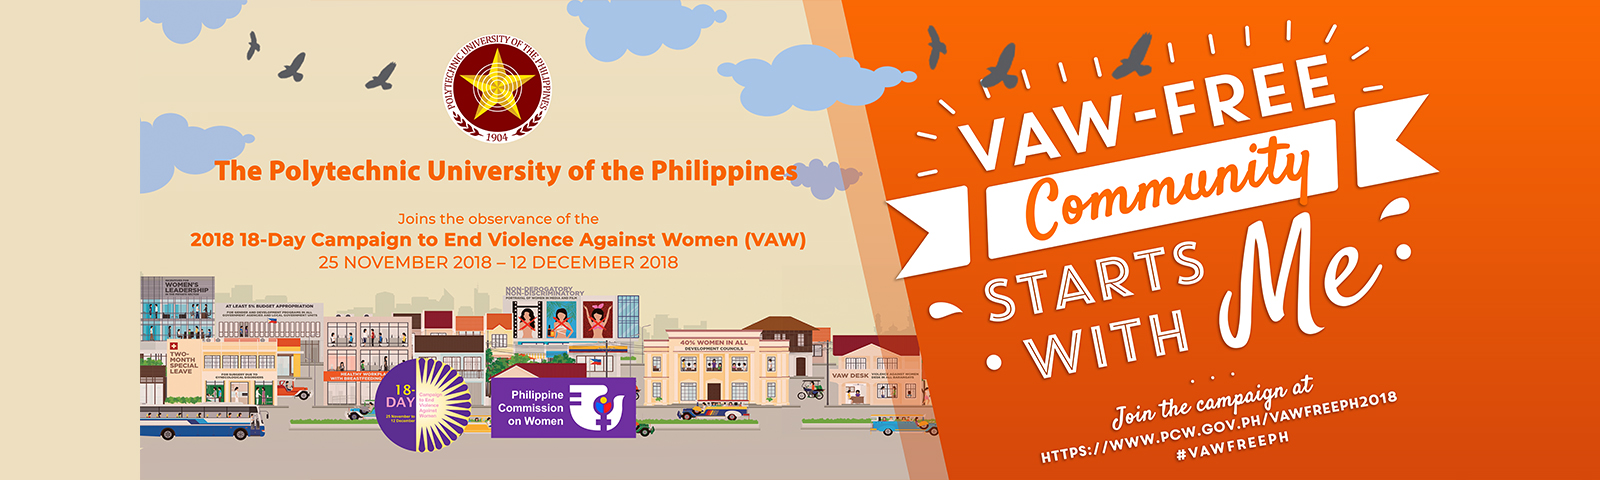 2018 18-Day Campaign to End VAW